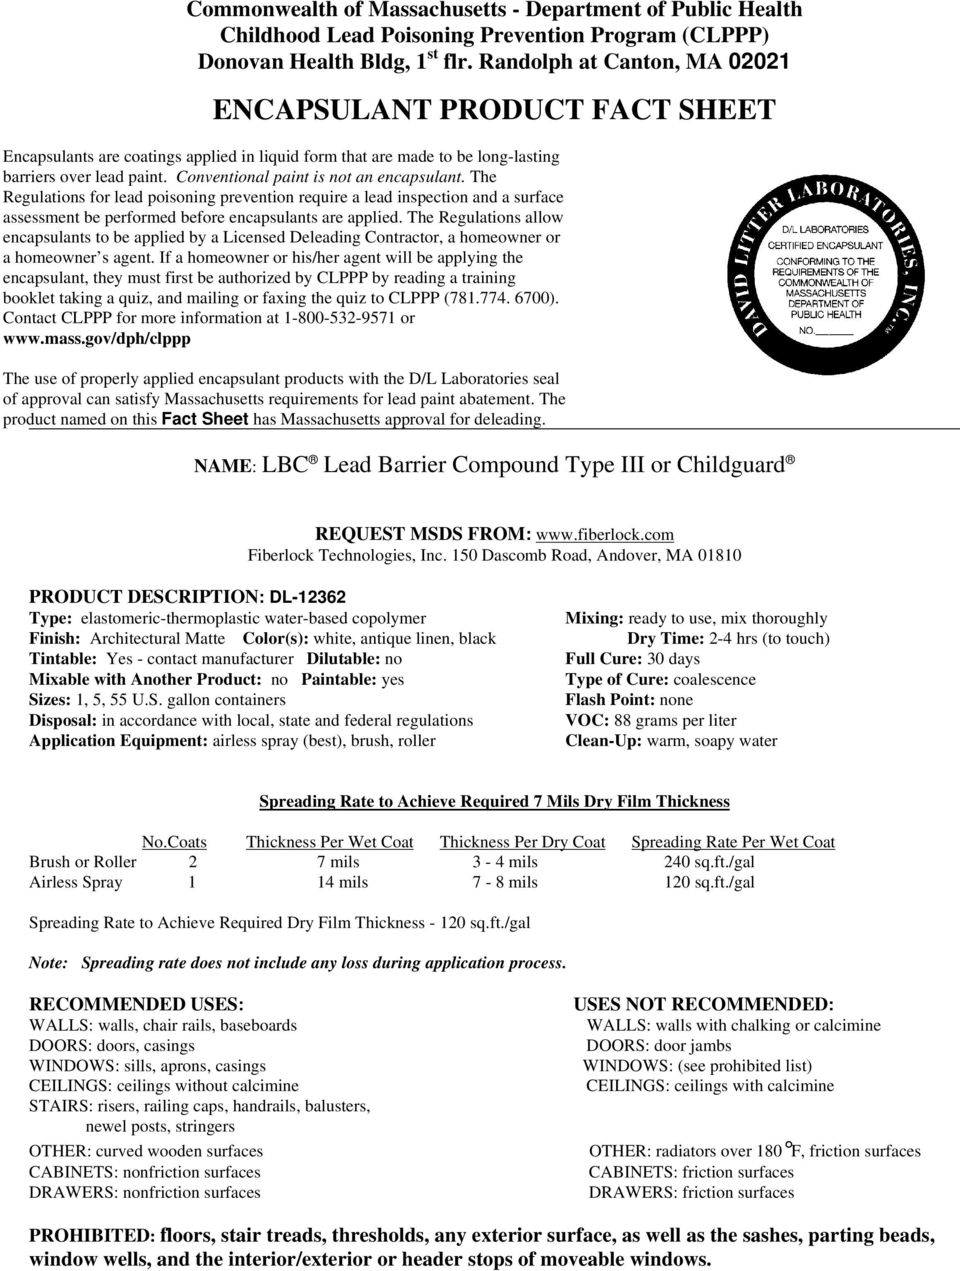 REGISTER OF APPROVED ENCAPSULANT PRODUCTS PAGE 1 - PDF